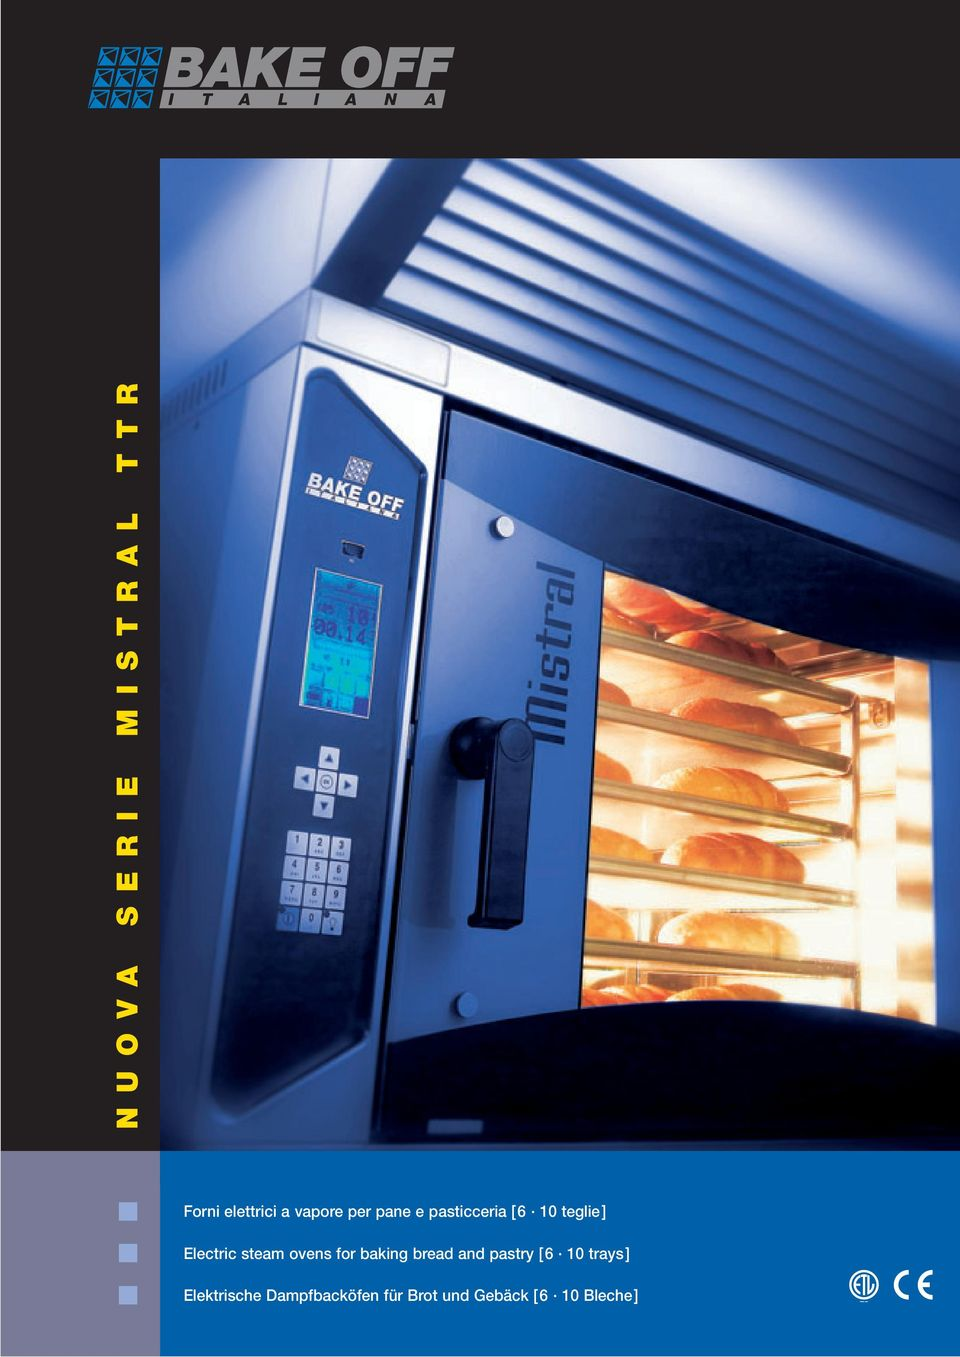 steam ovens for baking bread and pastry [6 10 trays]